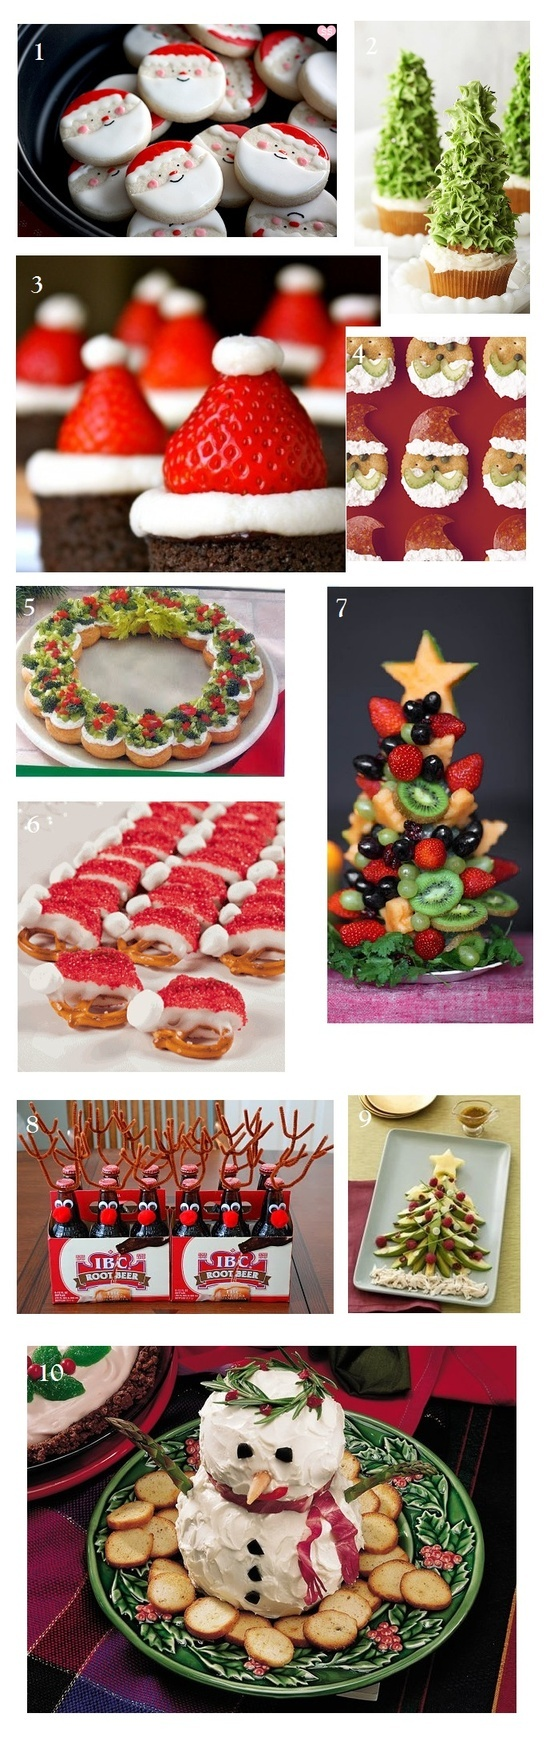 10 awesome christmas party and holiday food ideas and recipes 10 awesome christmas party and holiday food ideas and recipes forumfinder Images